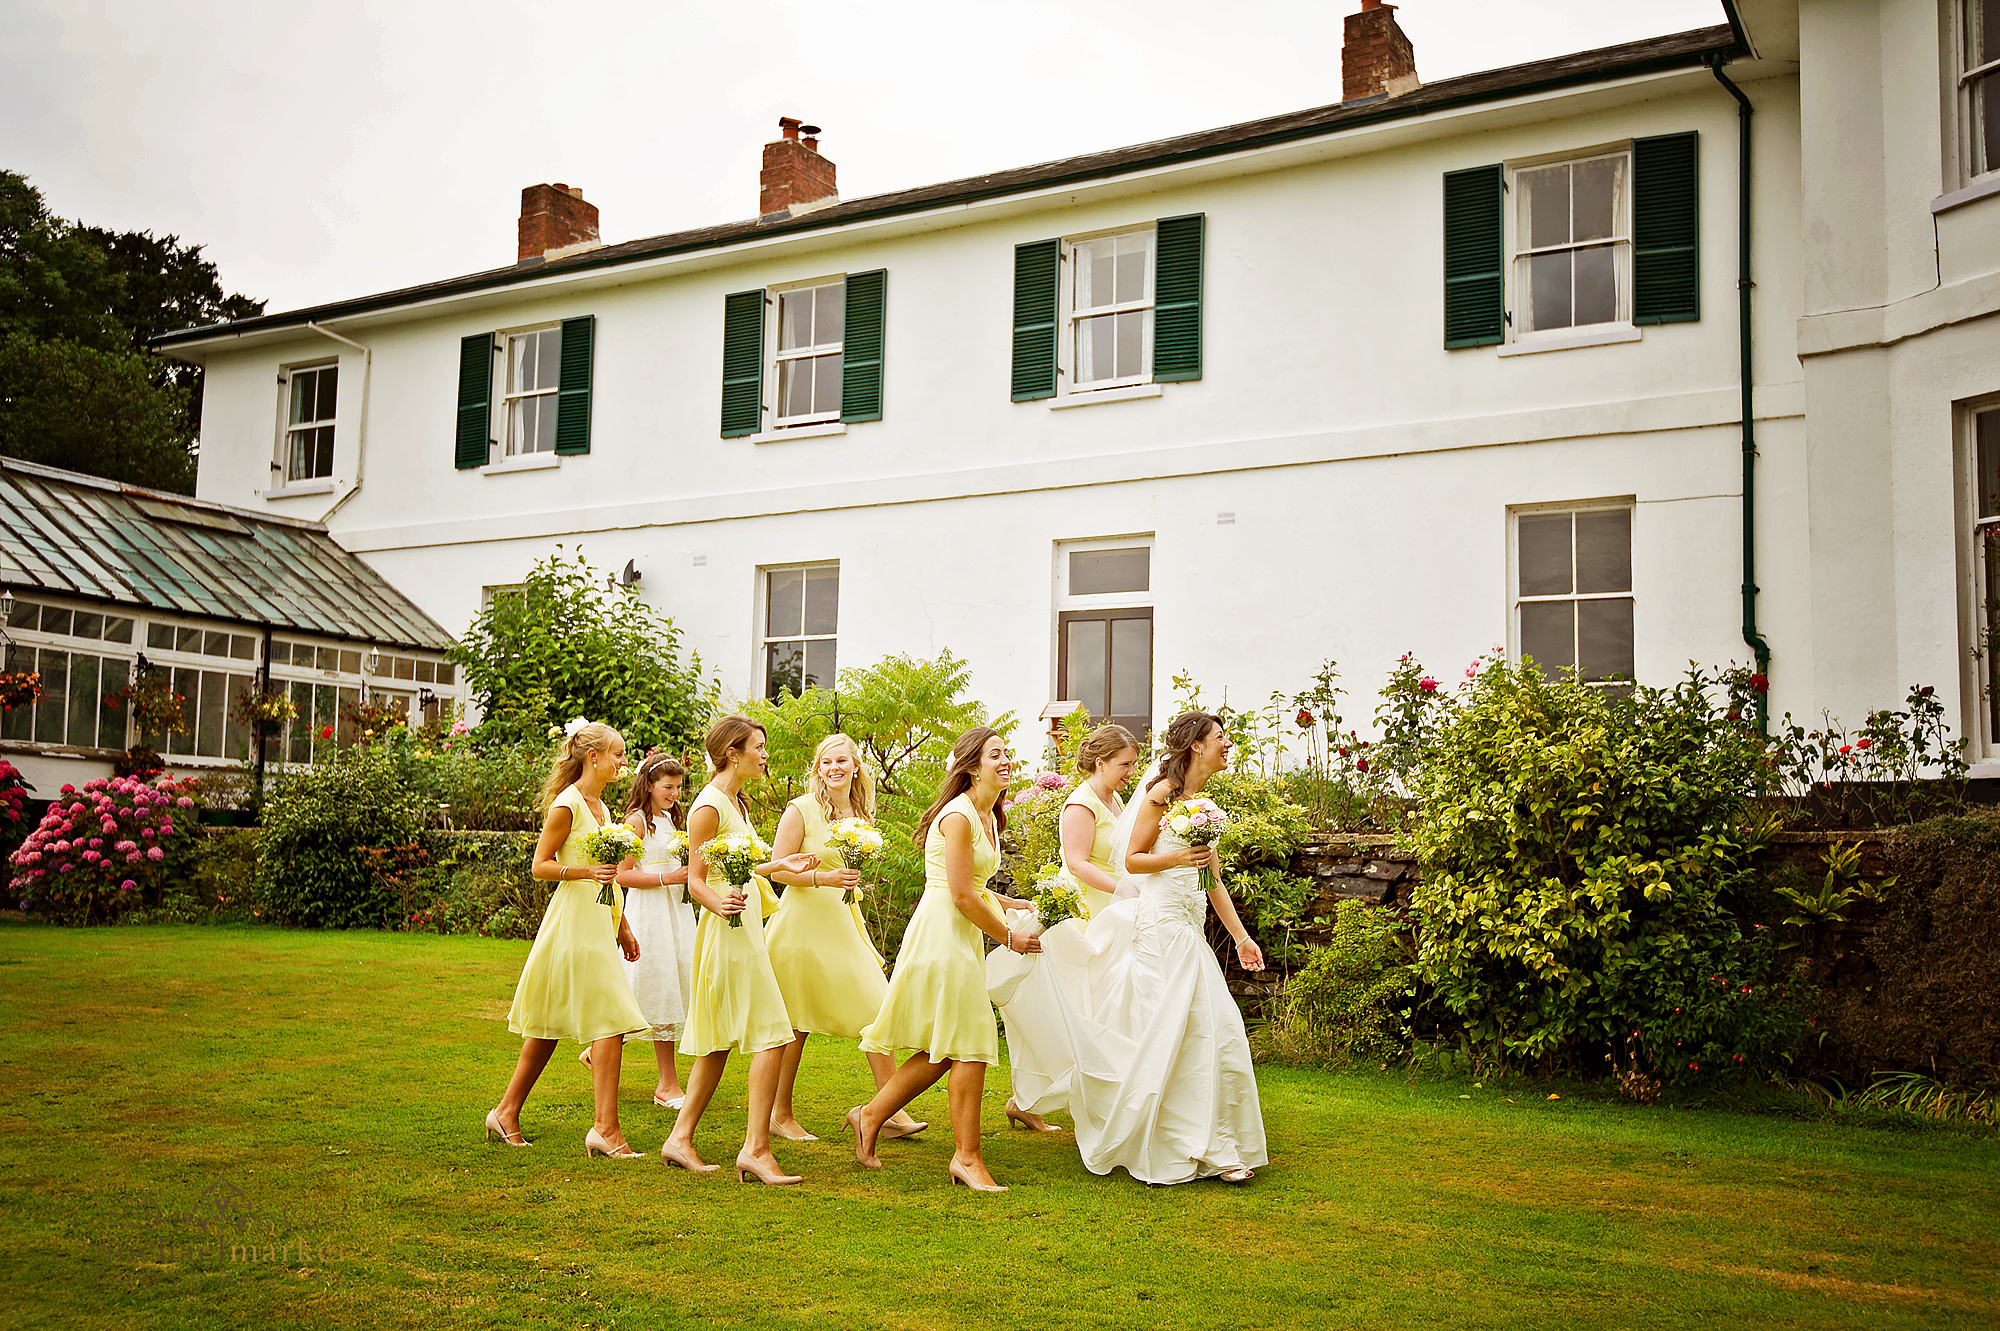 Bride and bridesmaids walking on grass outside family home in Devon